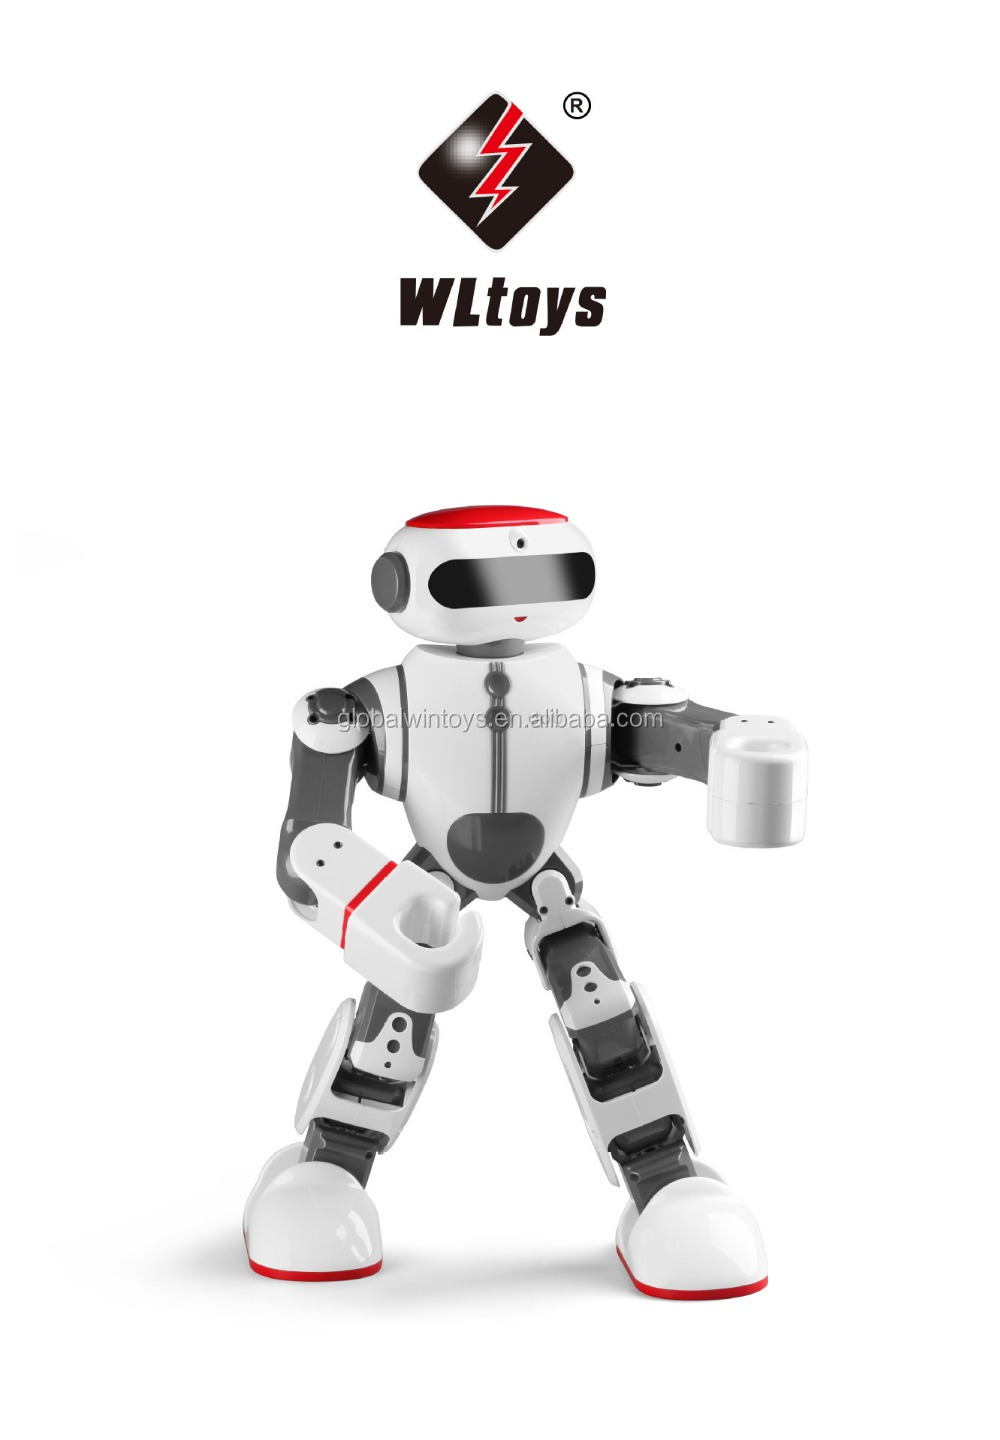 WLtoys F8 Dobi robot with voice control multifunctional intelligent rc robot for kids gift